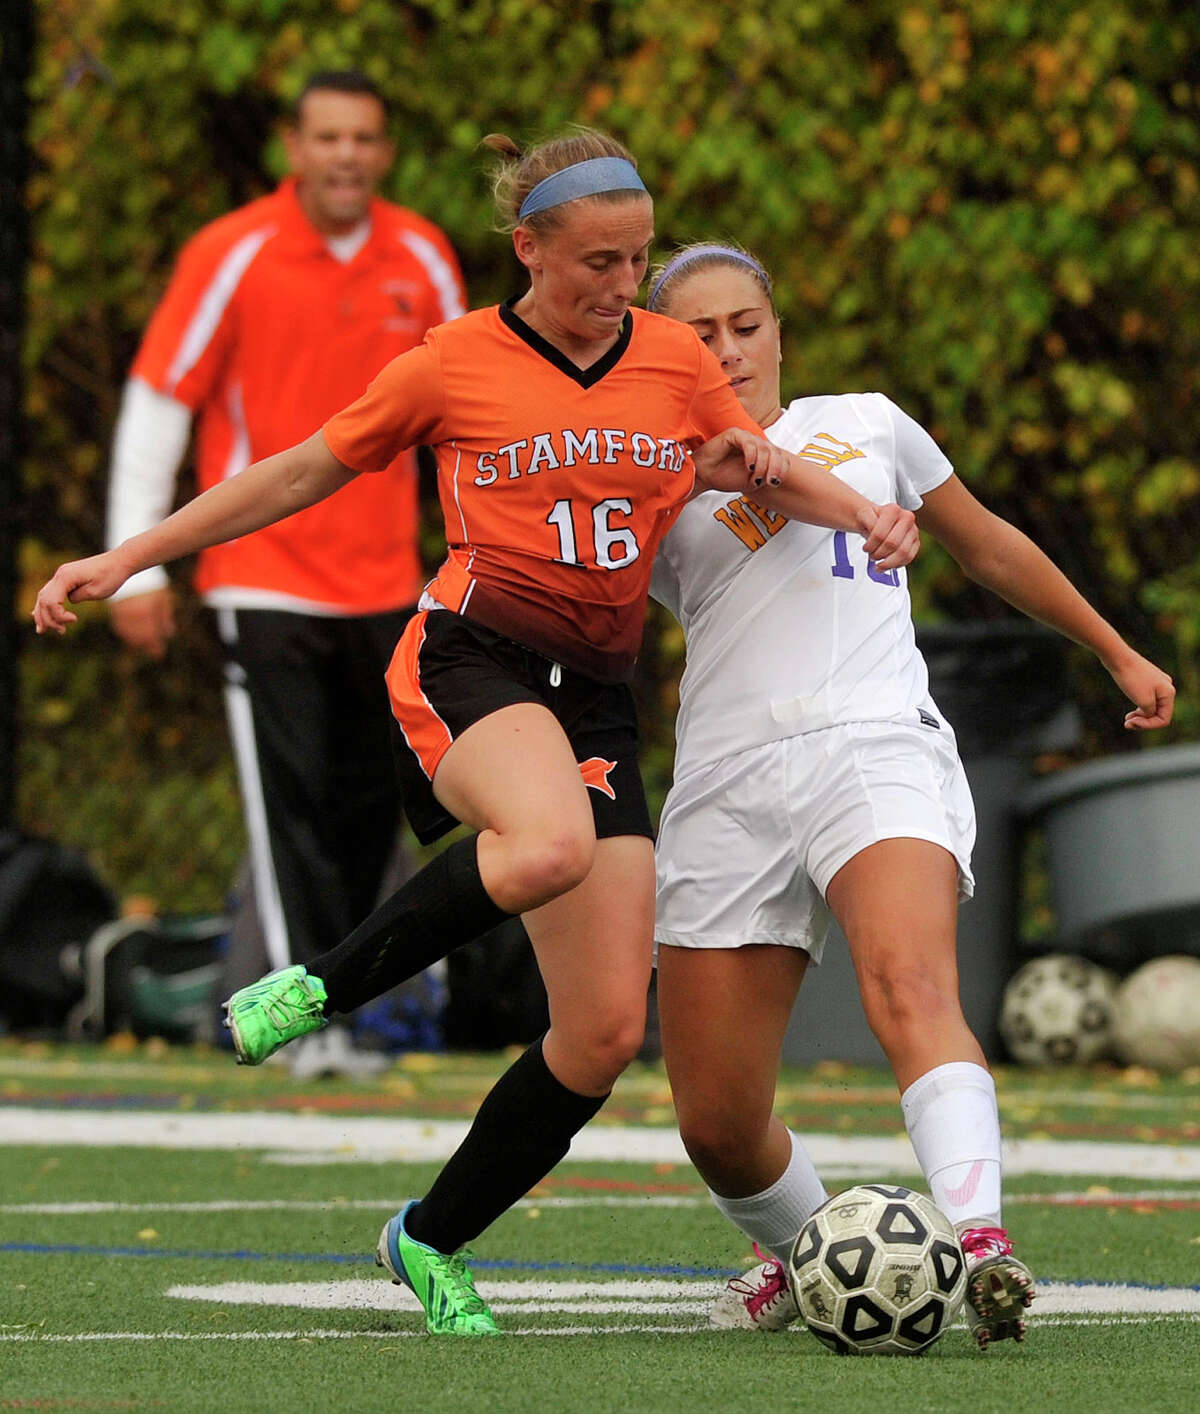 Stamford's Erica Stietzel and Westhill's Natalie Druehl compete for control of the ball during their game at Westhill High School in Stamford, Conn., on Tuesday, Oct. 14, 2014. Westhill won, 4-0.